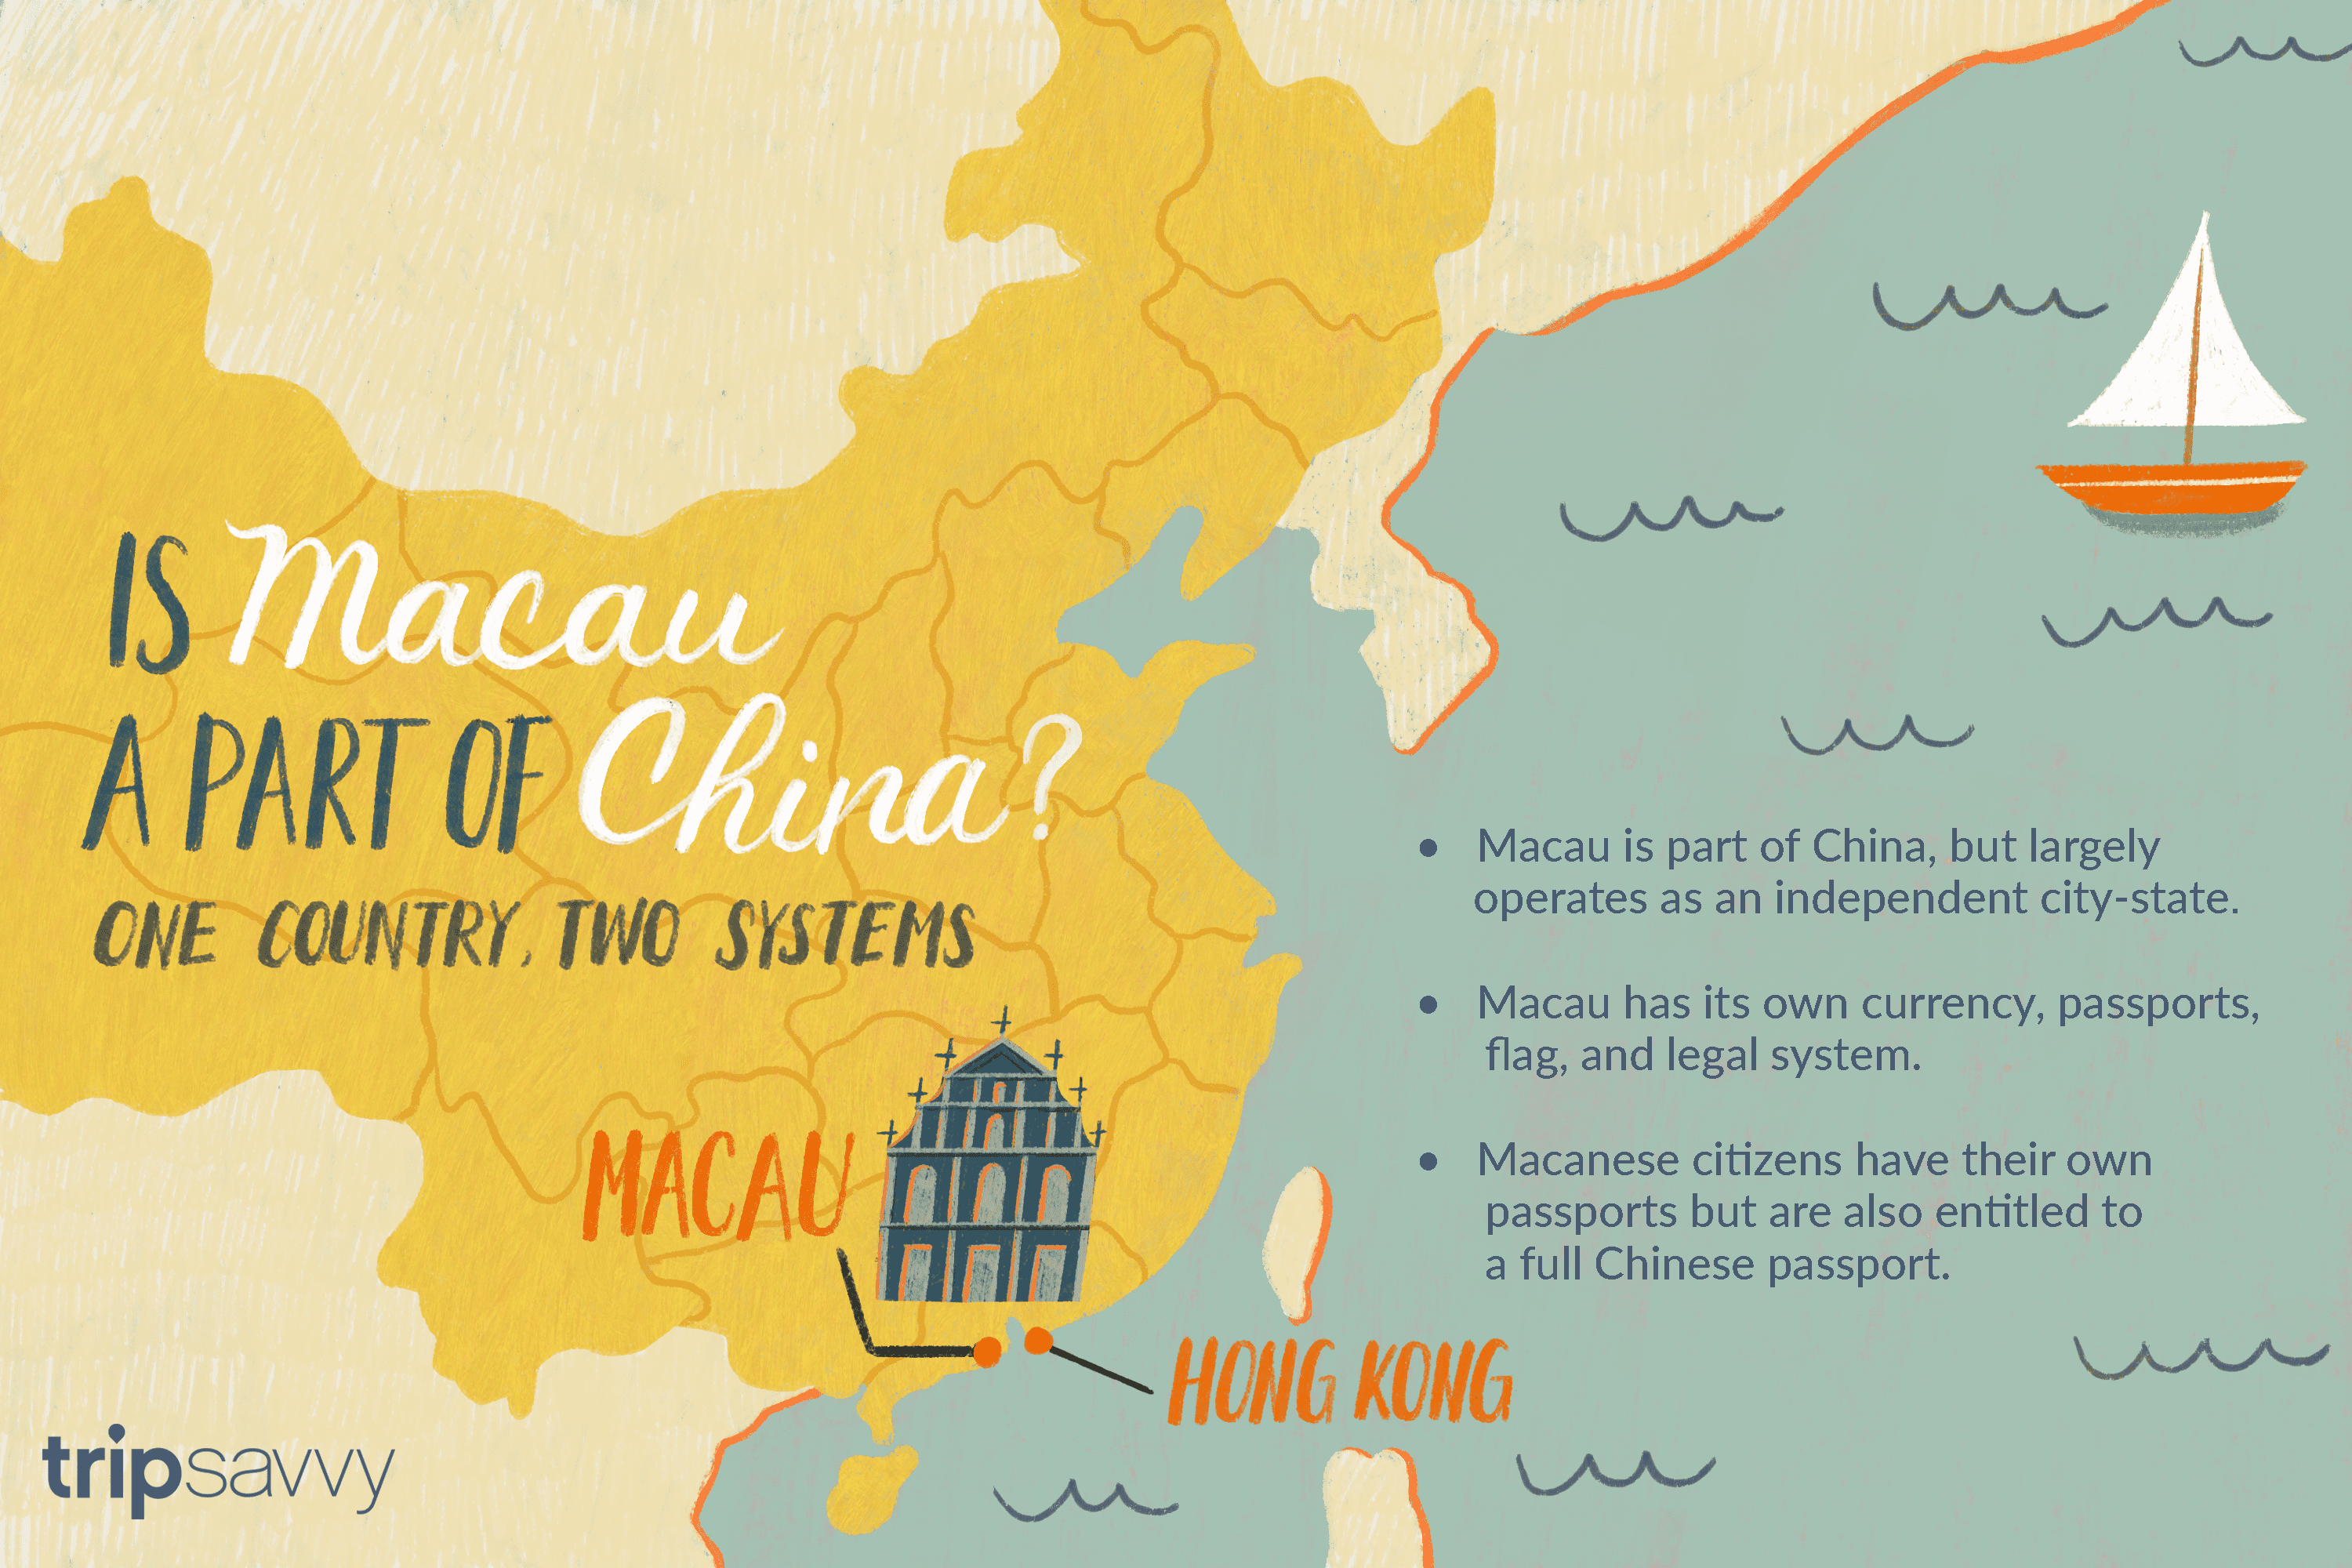 Is Macau Part of China? on san marino map, hong kong map, mongolia map, shanghai map, lijiang map, irrawaddy river map, indonesia map, dalian map, cotai map, chengdu map, wuhan map, macedonia map, asia map, china map, taipei map, beijing map, zhuhai map, kunming map, yangtze river map, suzhou map, guangzhou map, xiamen map, macau attractions, malta map, brunei map, shenzhen map, tianjin map, macau hotels, taipa map, niue map, huangshan map, vietnam map, nanjing map,